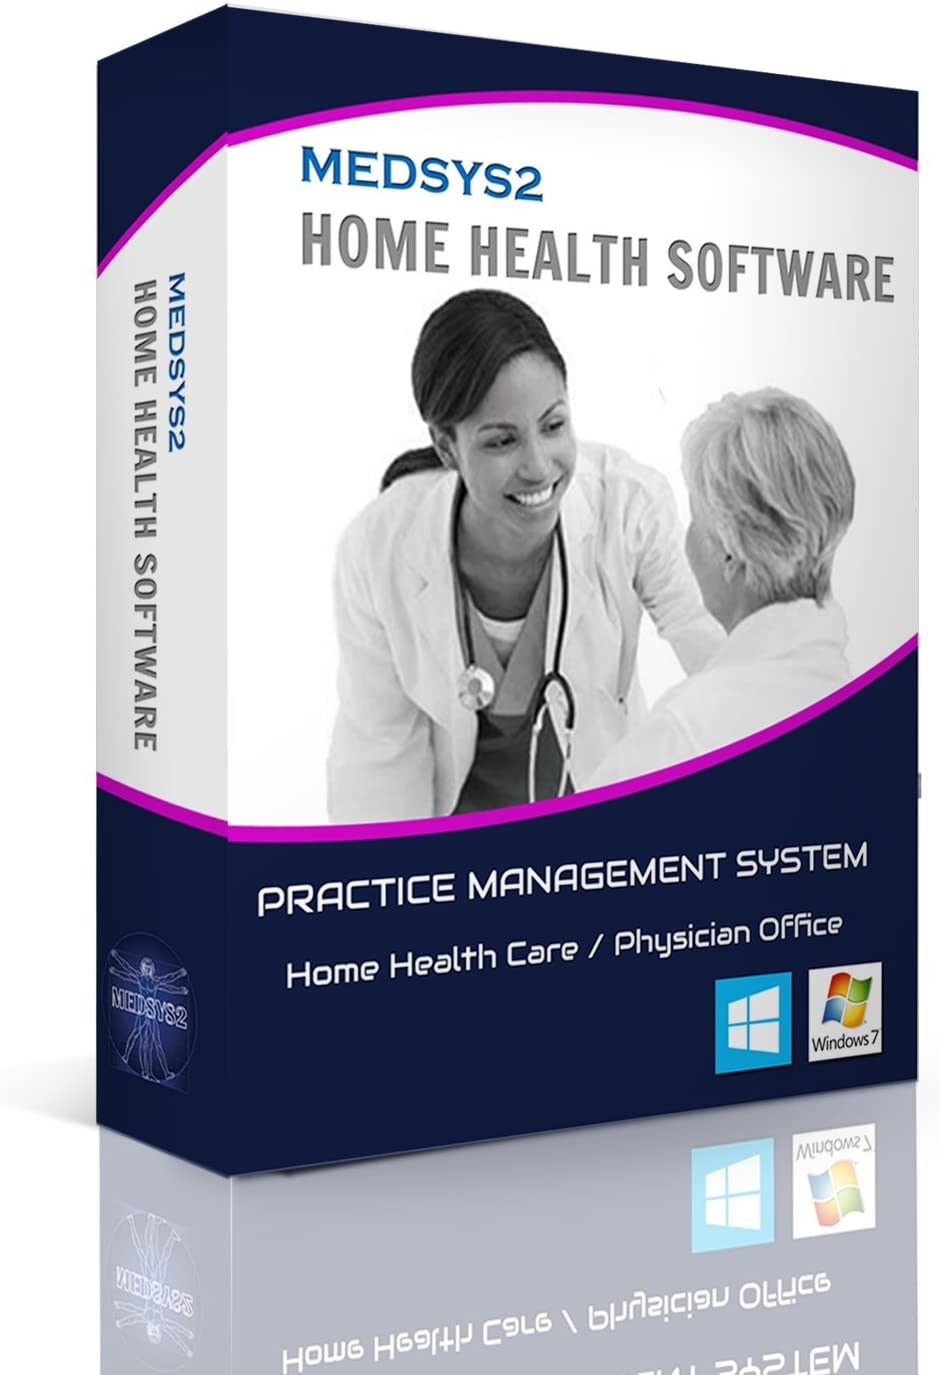 Home Care Software for Medical and Non Medical Caregivers (Professional Edition)